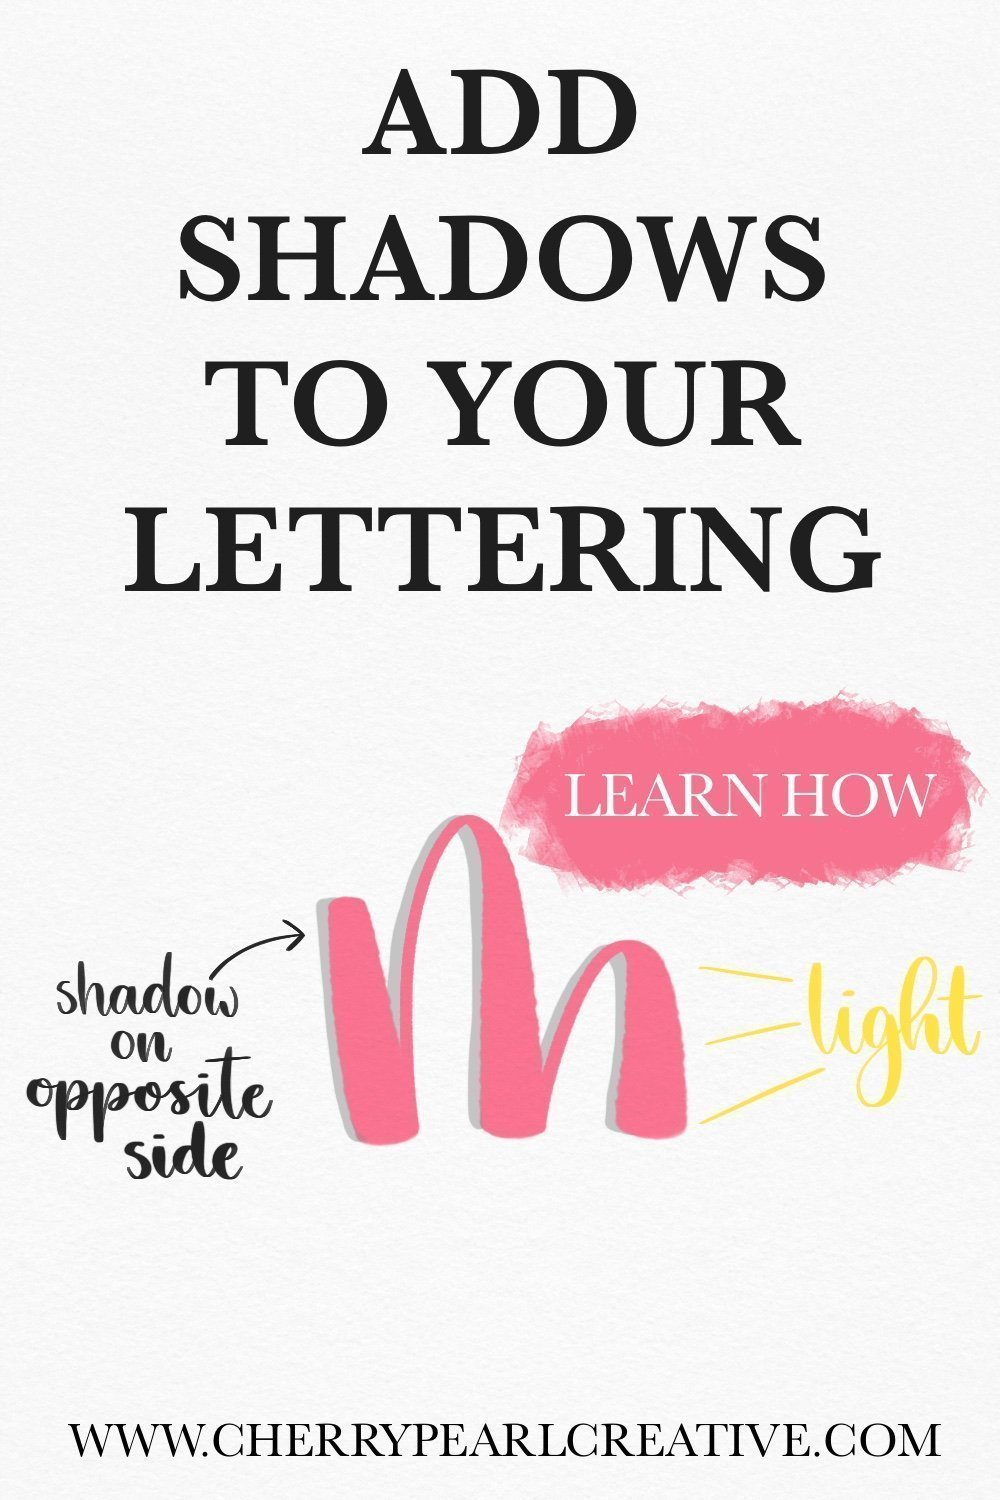 Add shadows to your letters! (Lettering & Calligraphy) Learn how - Cherry Pearl Creative